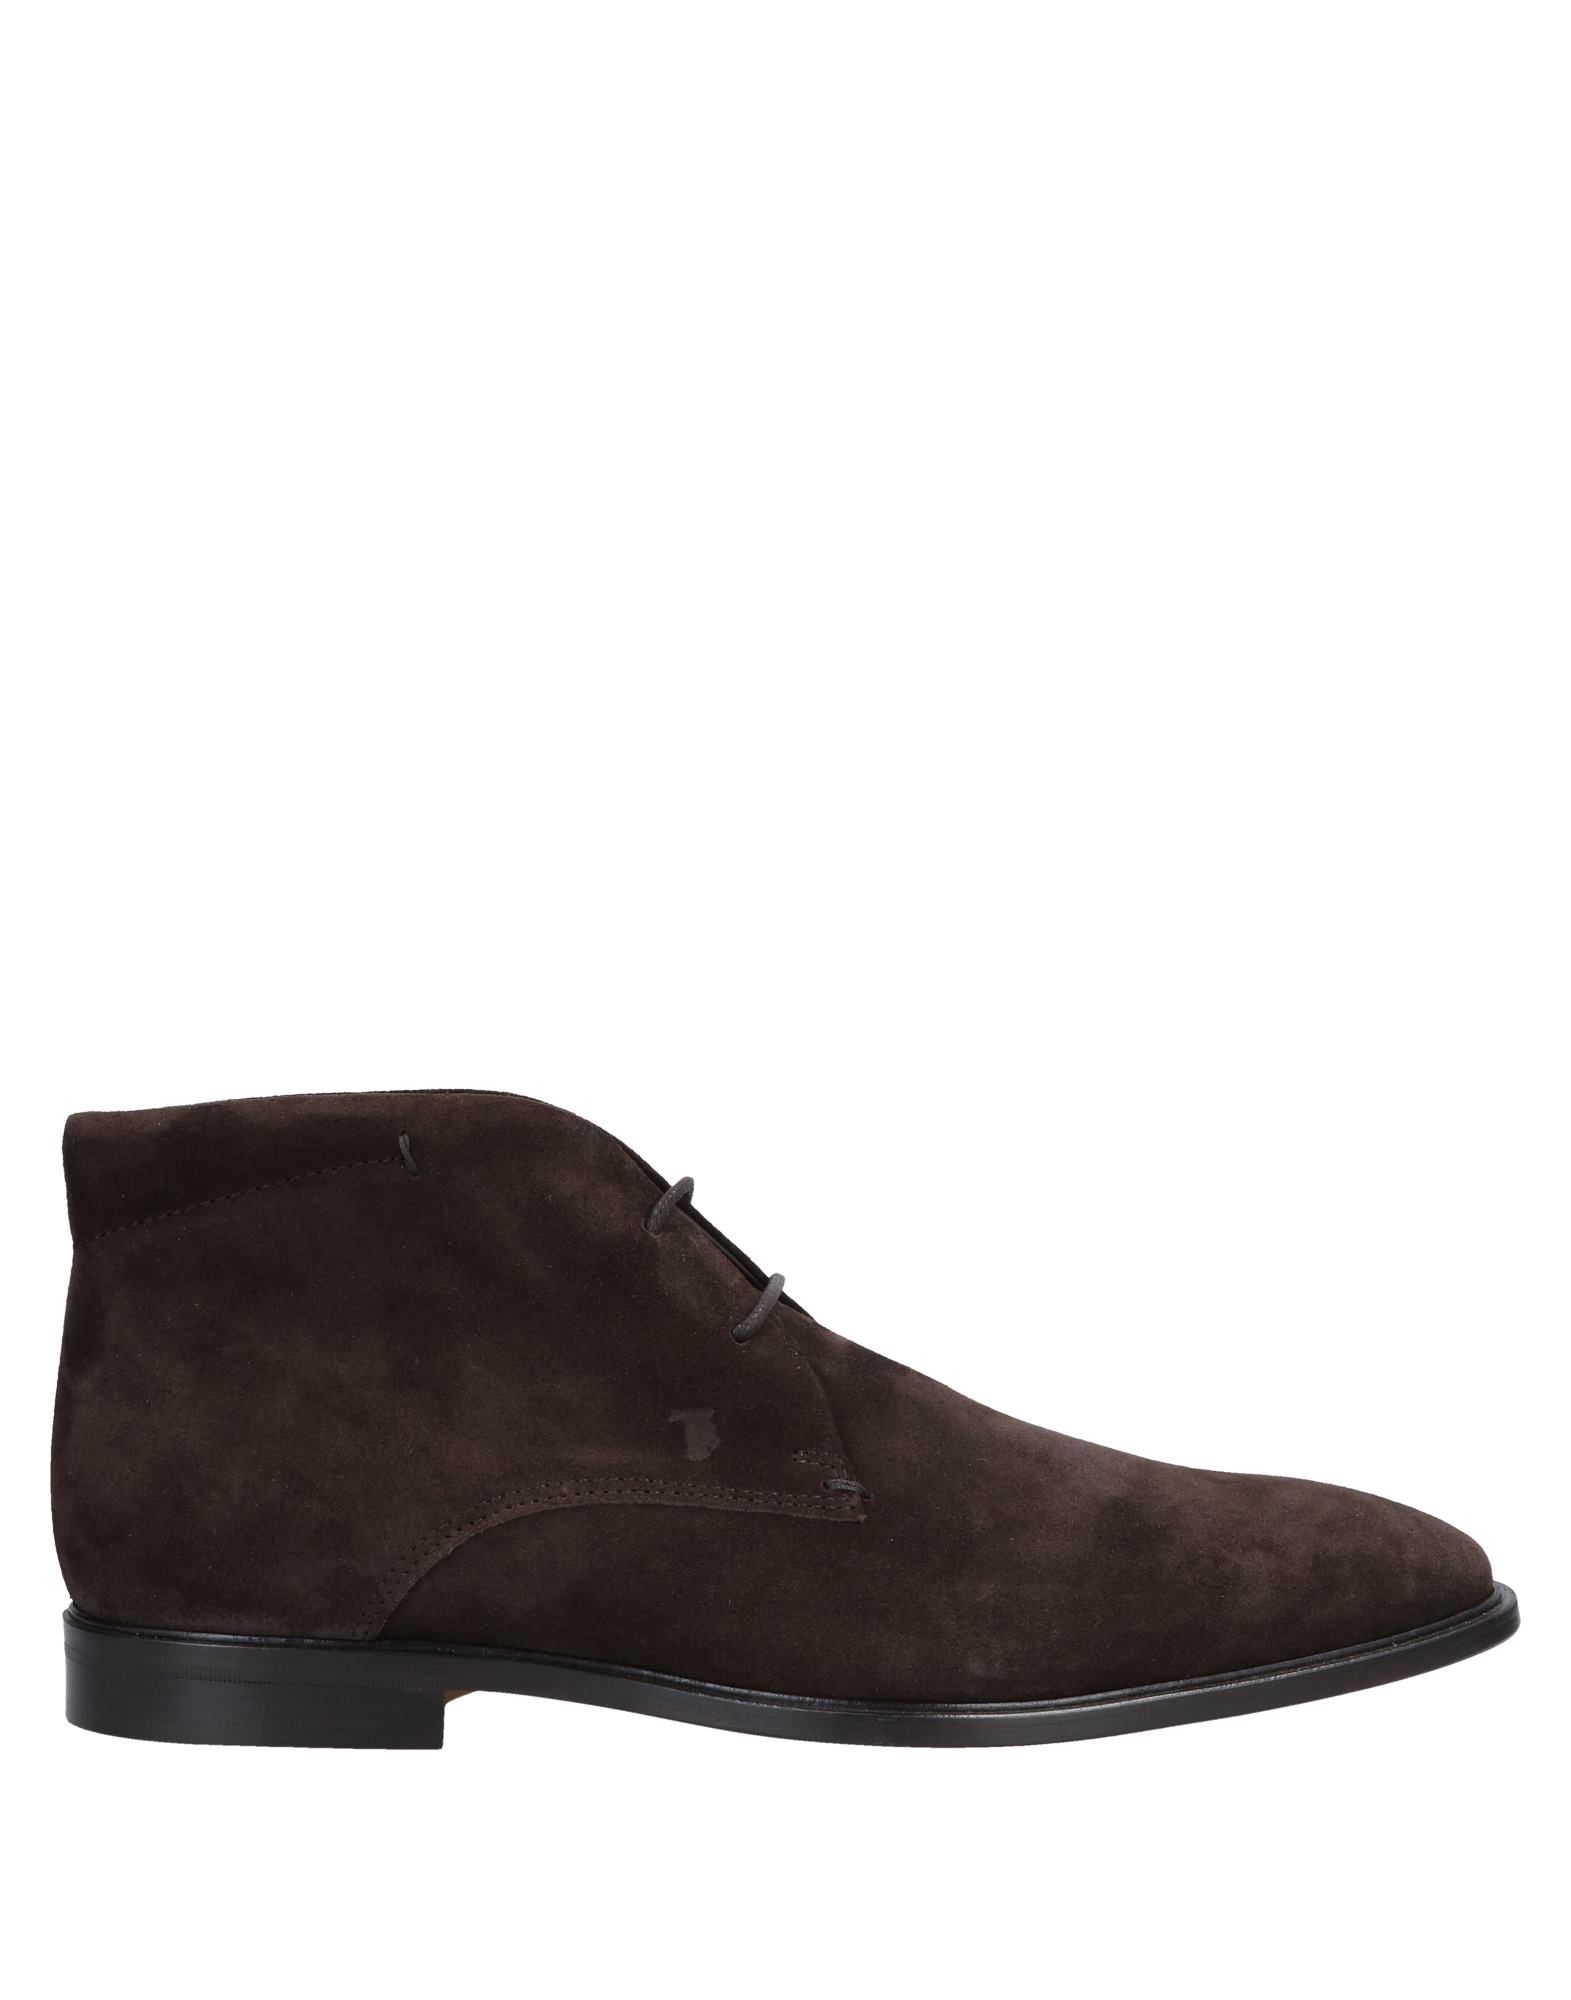 Tod's Boots - Men Tod's Boots online on 11568325EH  United Kingdom - 11568325EH on 0d3b2b